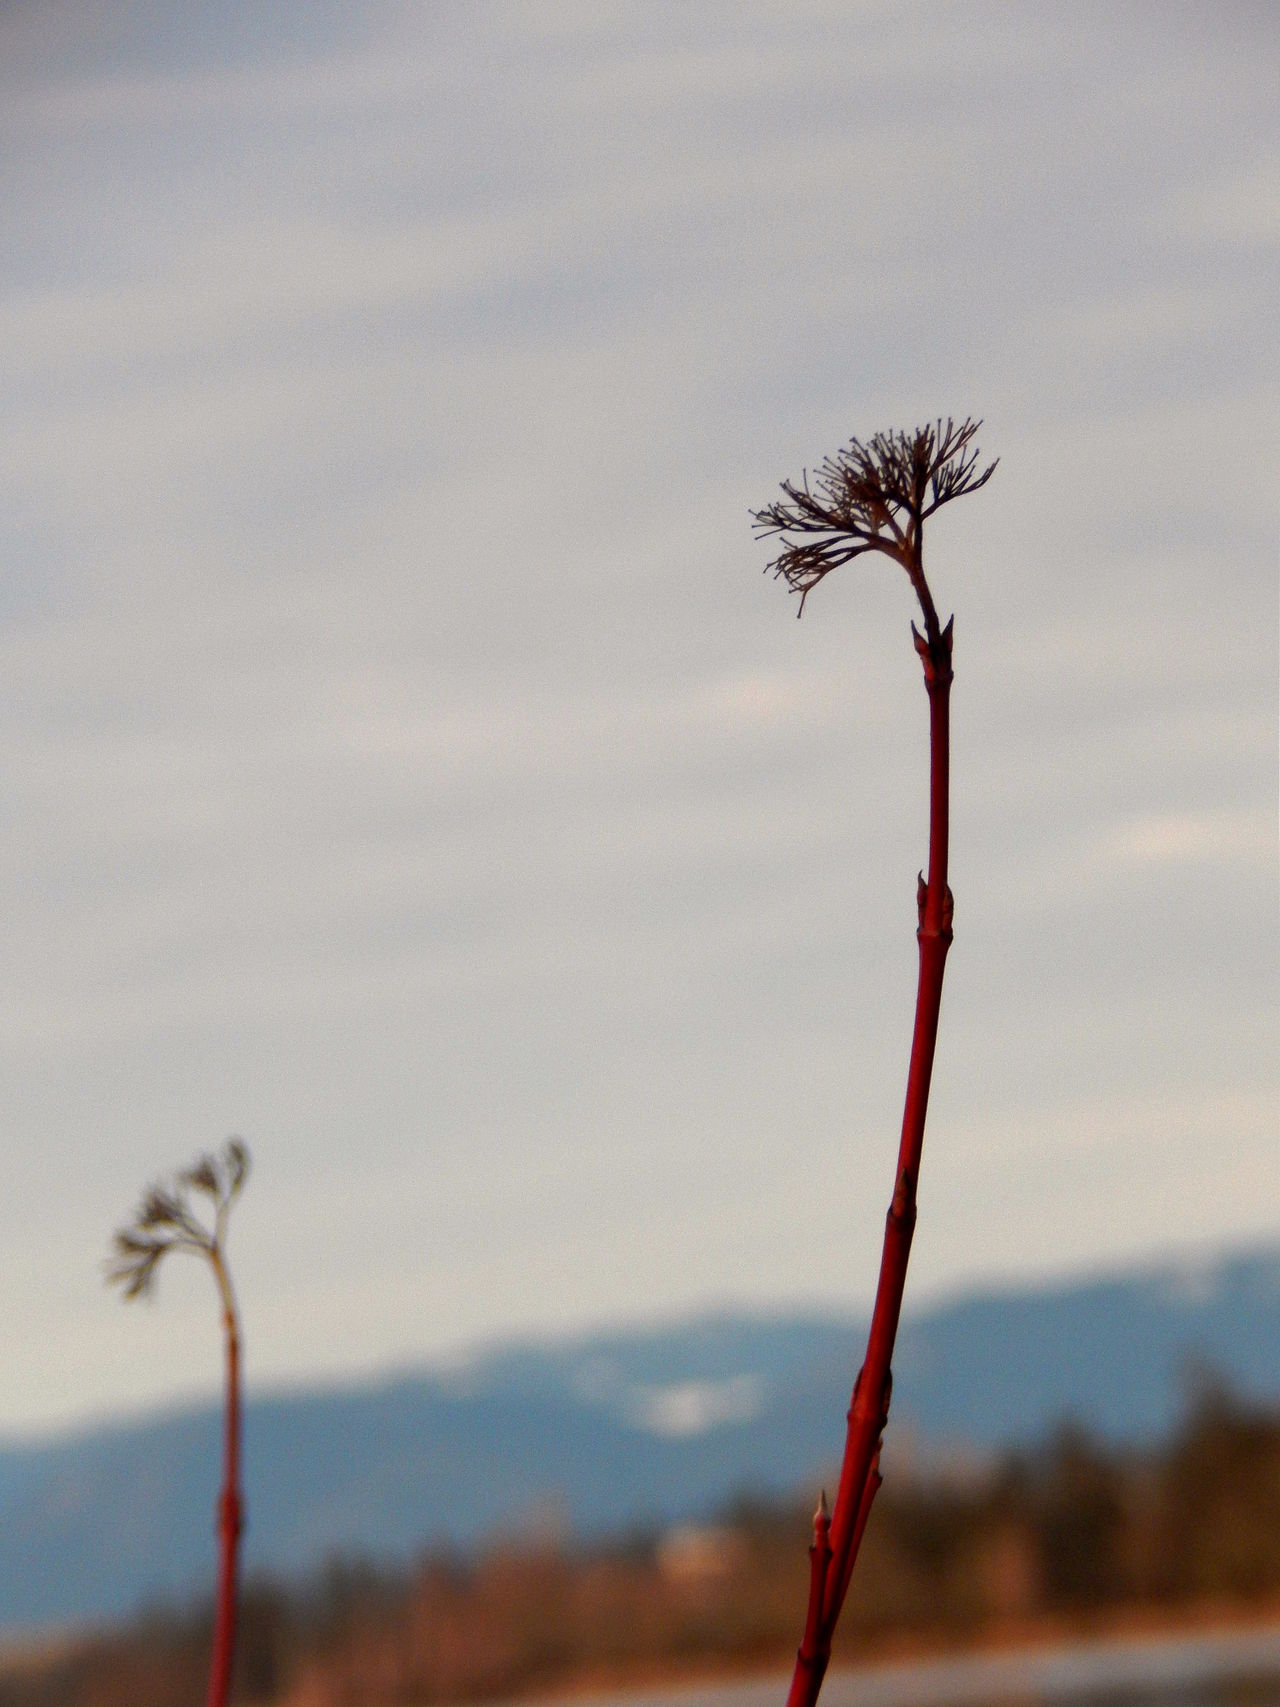 LIfe Beauty In Nature Brush Built Structure Close-up Cloud - Sky Dandelion Seed Day Flower Focus Focus On Foreground Forgotten Fragility Growth Life Lifestyles Minimalism MiniPlants Nature No People Outdoors Plant Red Sky Sprouting Sprouts